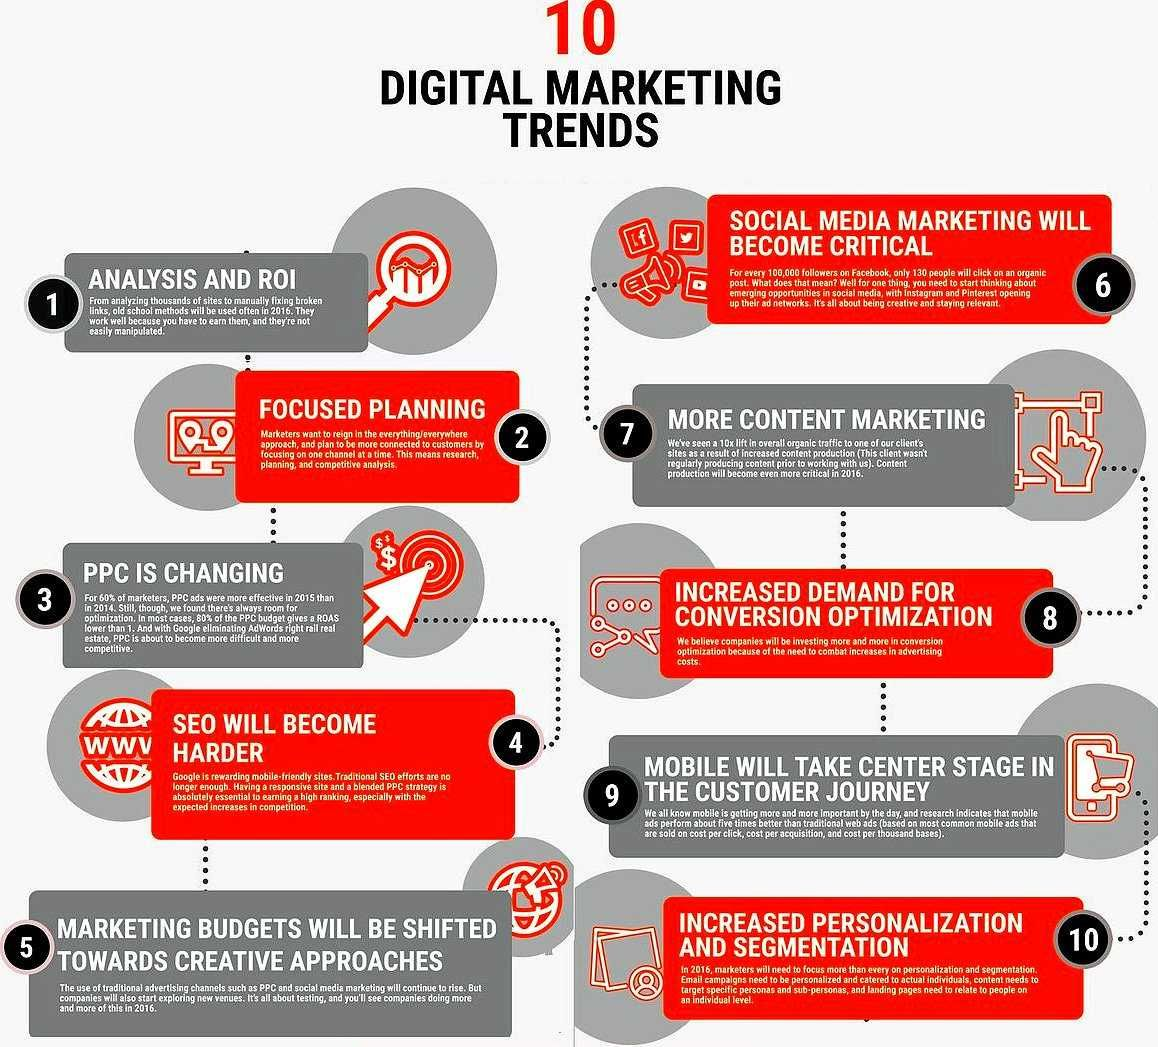 Best #DigitalMarketing Trends #GrowthHacking #Marketing #startups #blacksheep #socialmediamarketing #contentmarketing #blogging #SEO<br>http://pic.twitter.com/YTQsVOzVdW